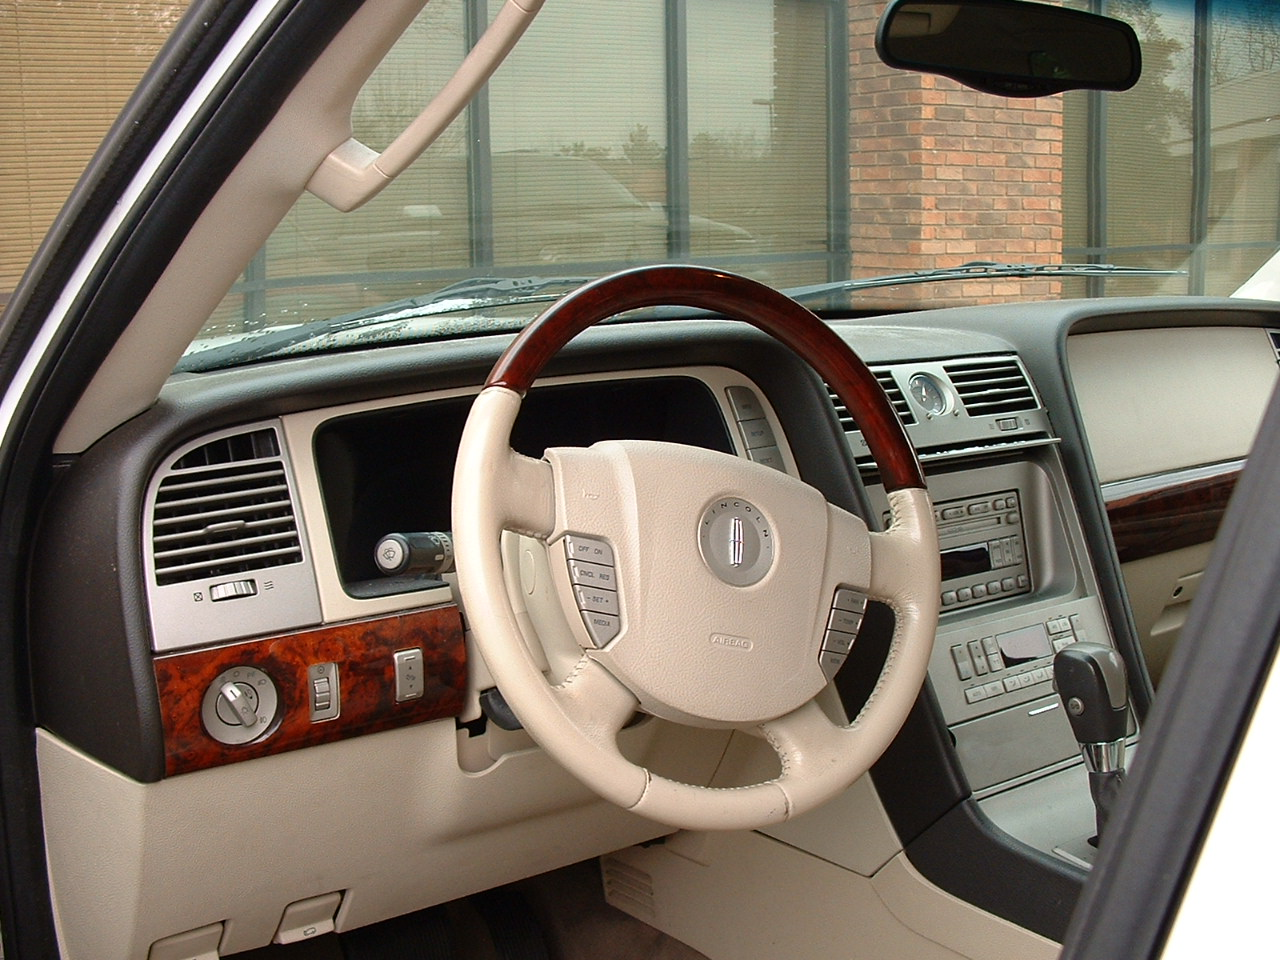 2003 lincoln navigator interior pictures cargurus 2000 lincoln navigator interior